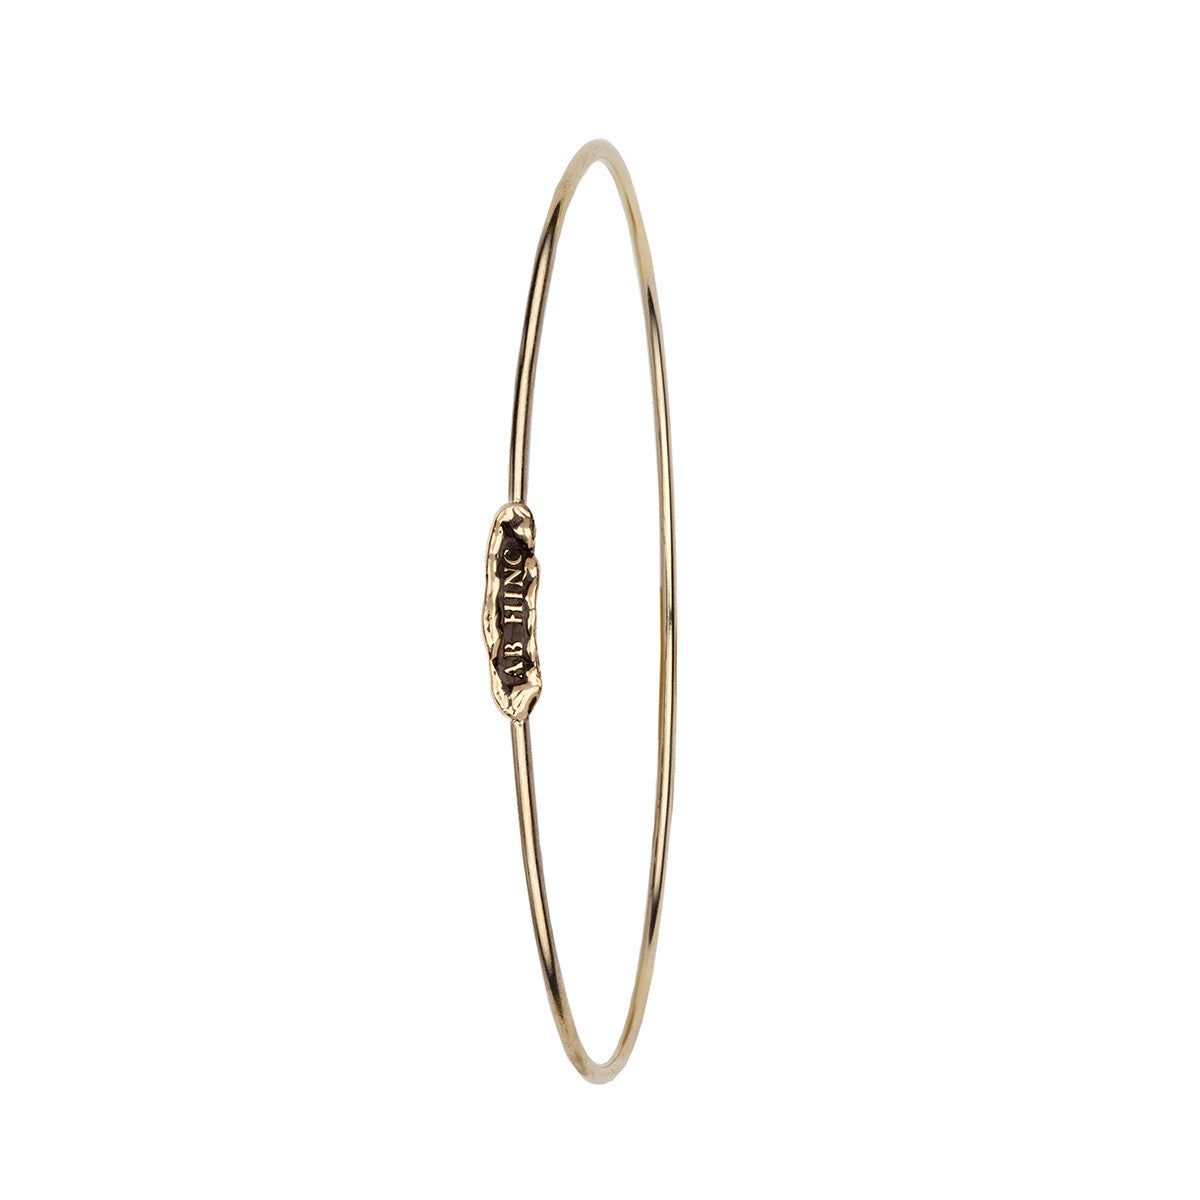 Ab Hinc (From Here On) 14K Gold Polished Bangle